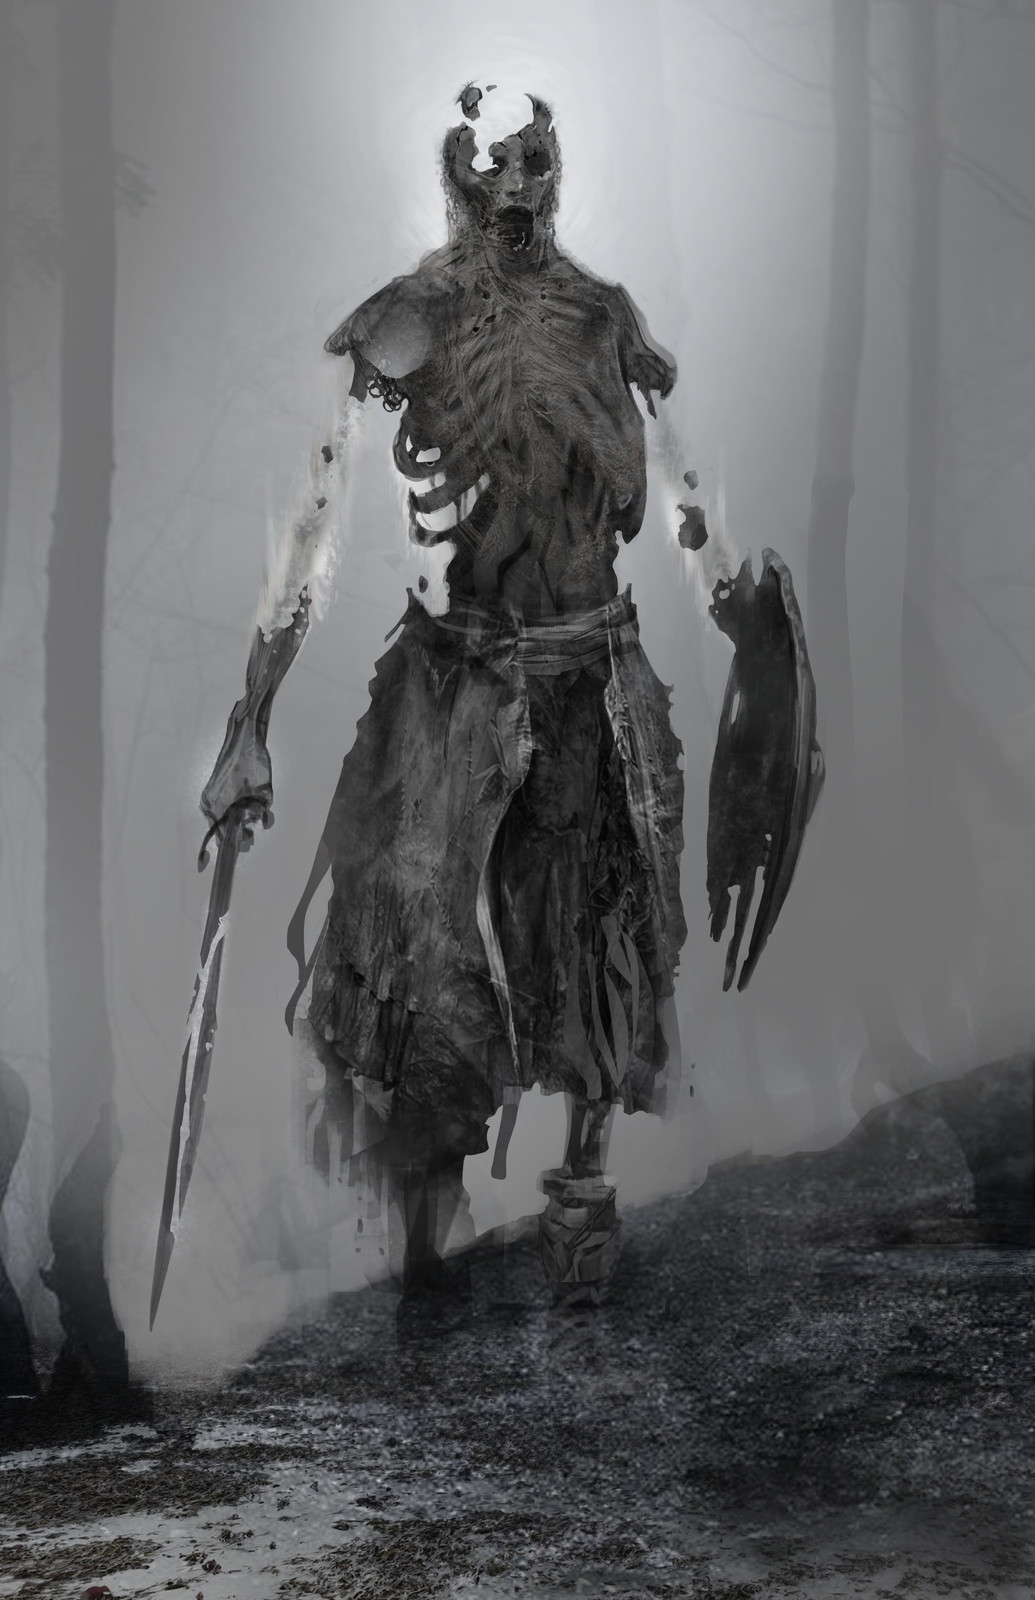 Early Draugr exploration